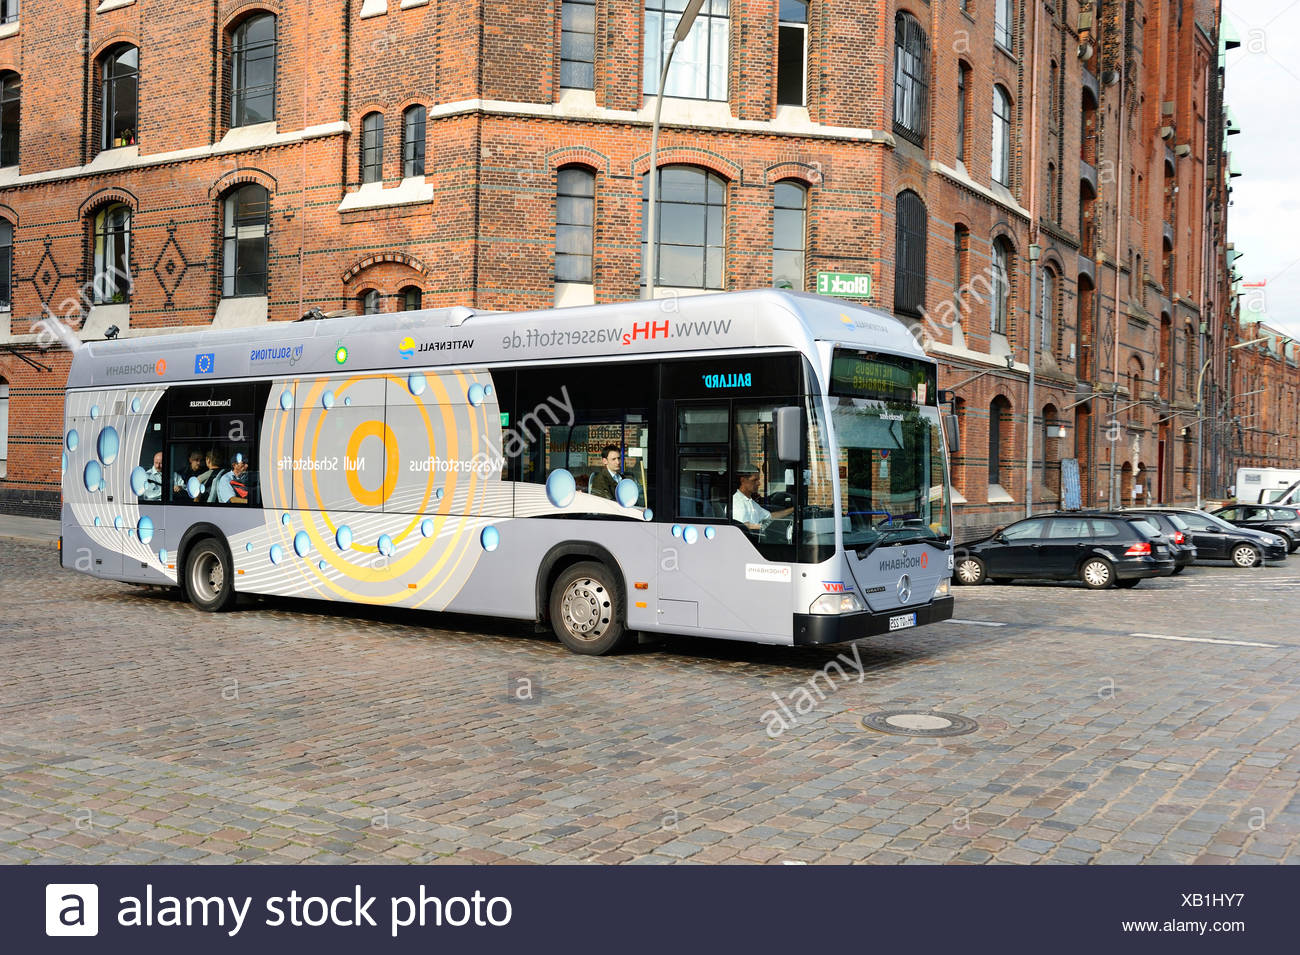 hydrogen fuel bus stock photos hydrogen fuel bus stock images alamy. Black Bedroom Furniture Sets. Home Design Ideas